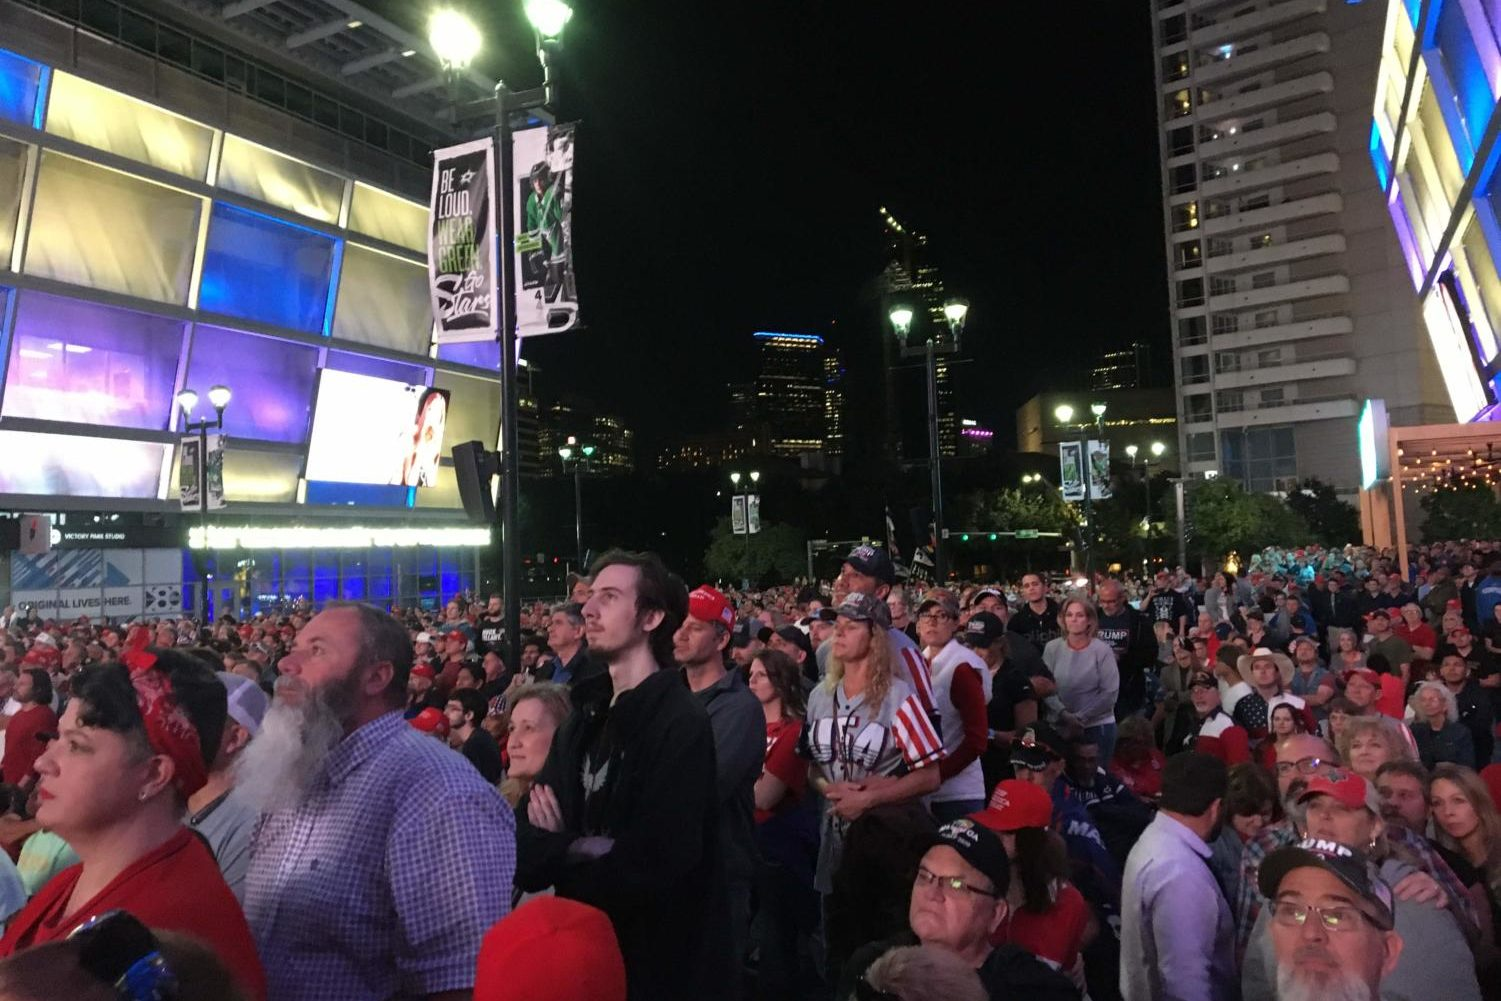 Supporters watch President Donald Trump on a live broadcast in the plaza at the south entrance of the American Airlines Center in Dallas yesterday. Trump held a rally to further his support of the upcoming presidential election.